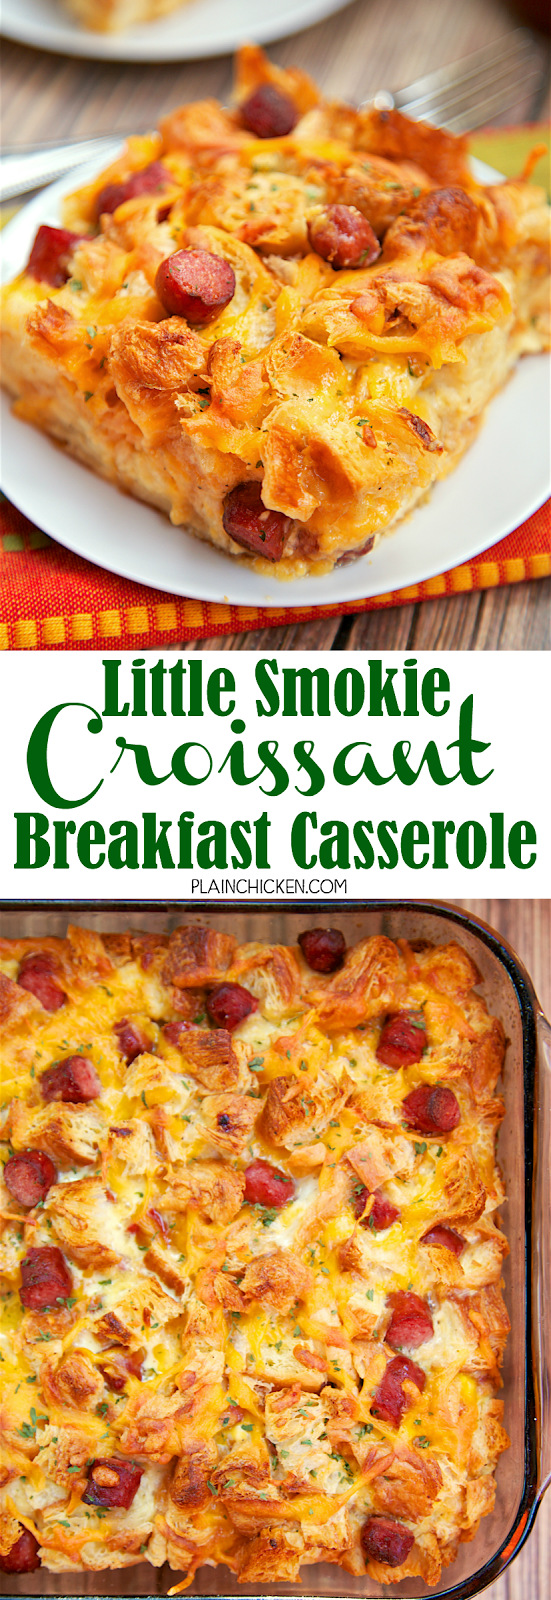 Little Smokie Croissant Breakfast Casserole - Buttery croissants, cheddar cheese, little smokies, eggs and milk. This casserole is assembled the night before and refrigerated overnight. Perfect for an easy weekday breakfast or overnight guests. We like to have this for dinner too! SO good! Everyone love this casserole!